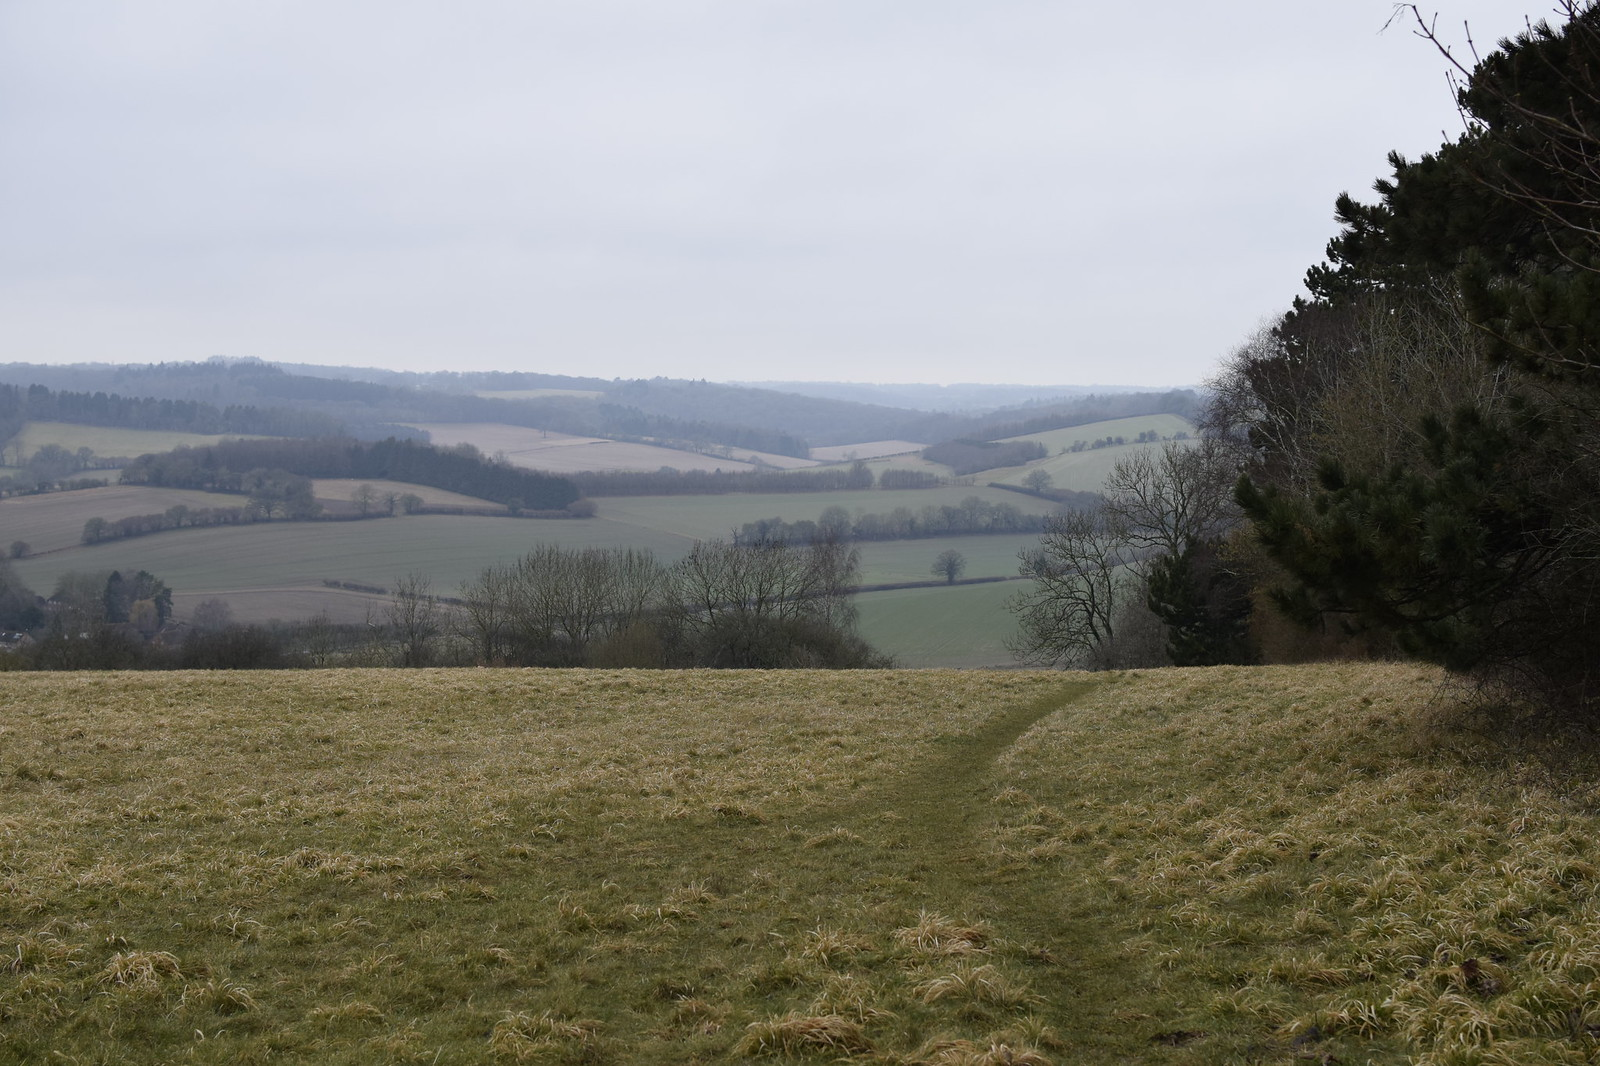 photo from walk Robertsbridge Circular walk Quiet, rolling hills, Bodiam Castle (NT), with a gentler finish.